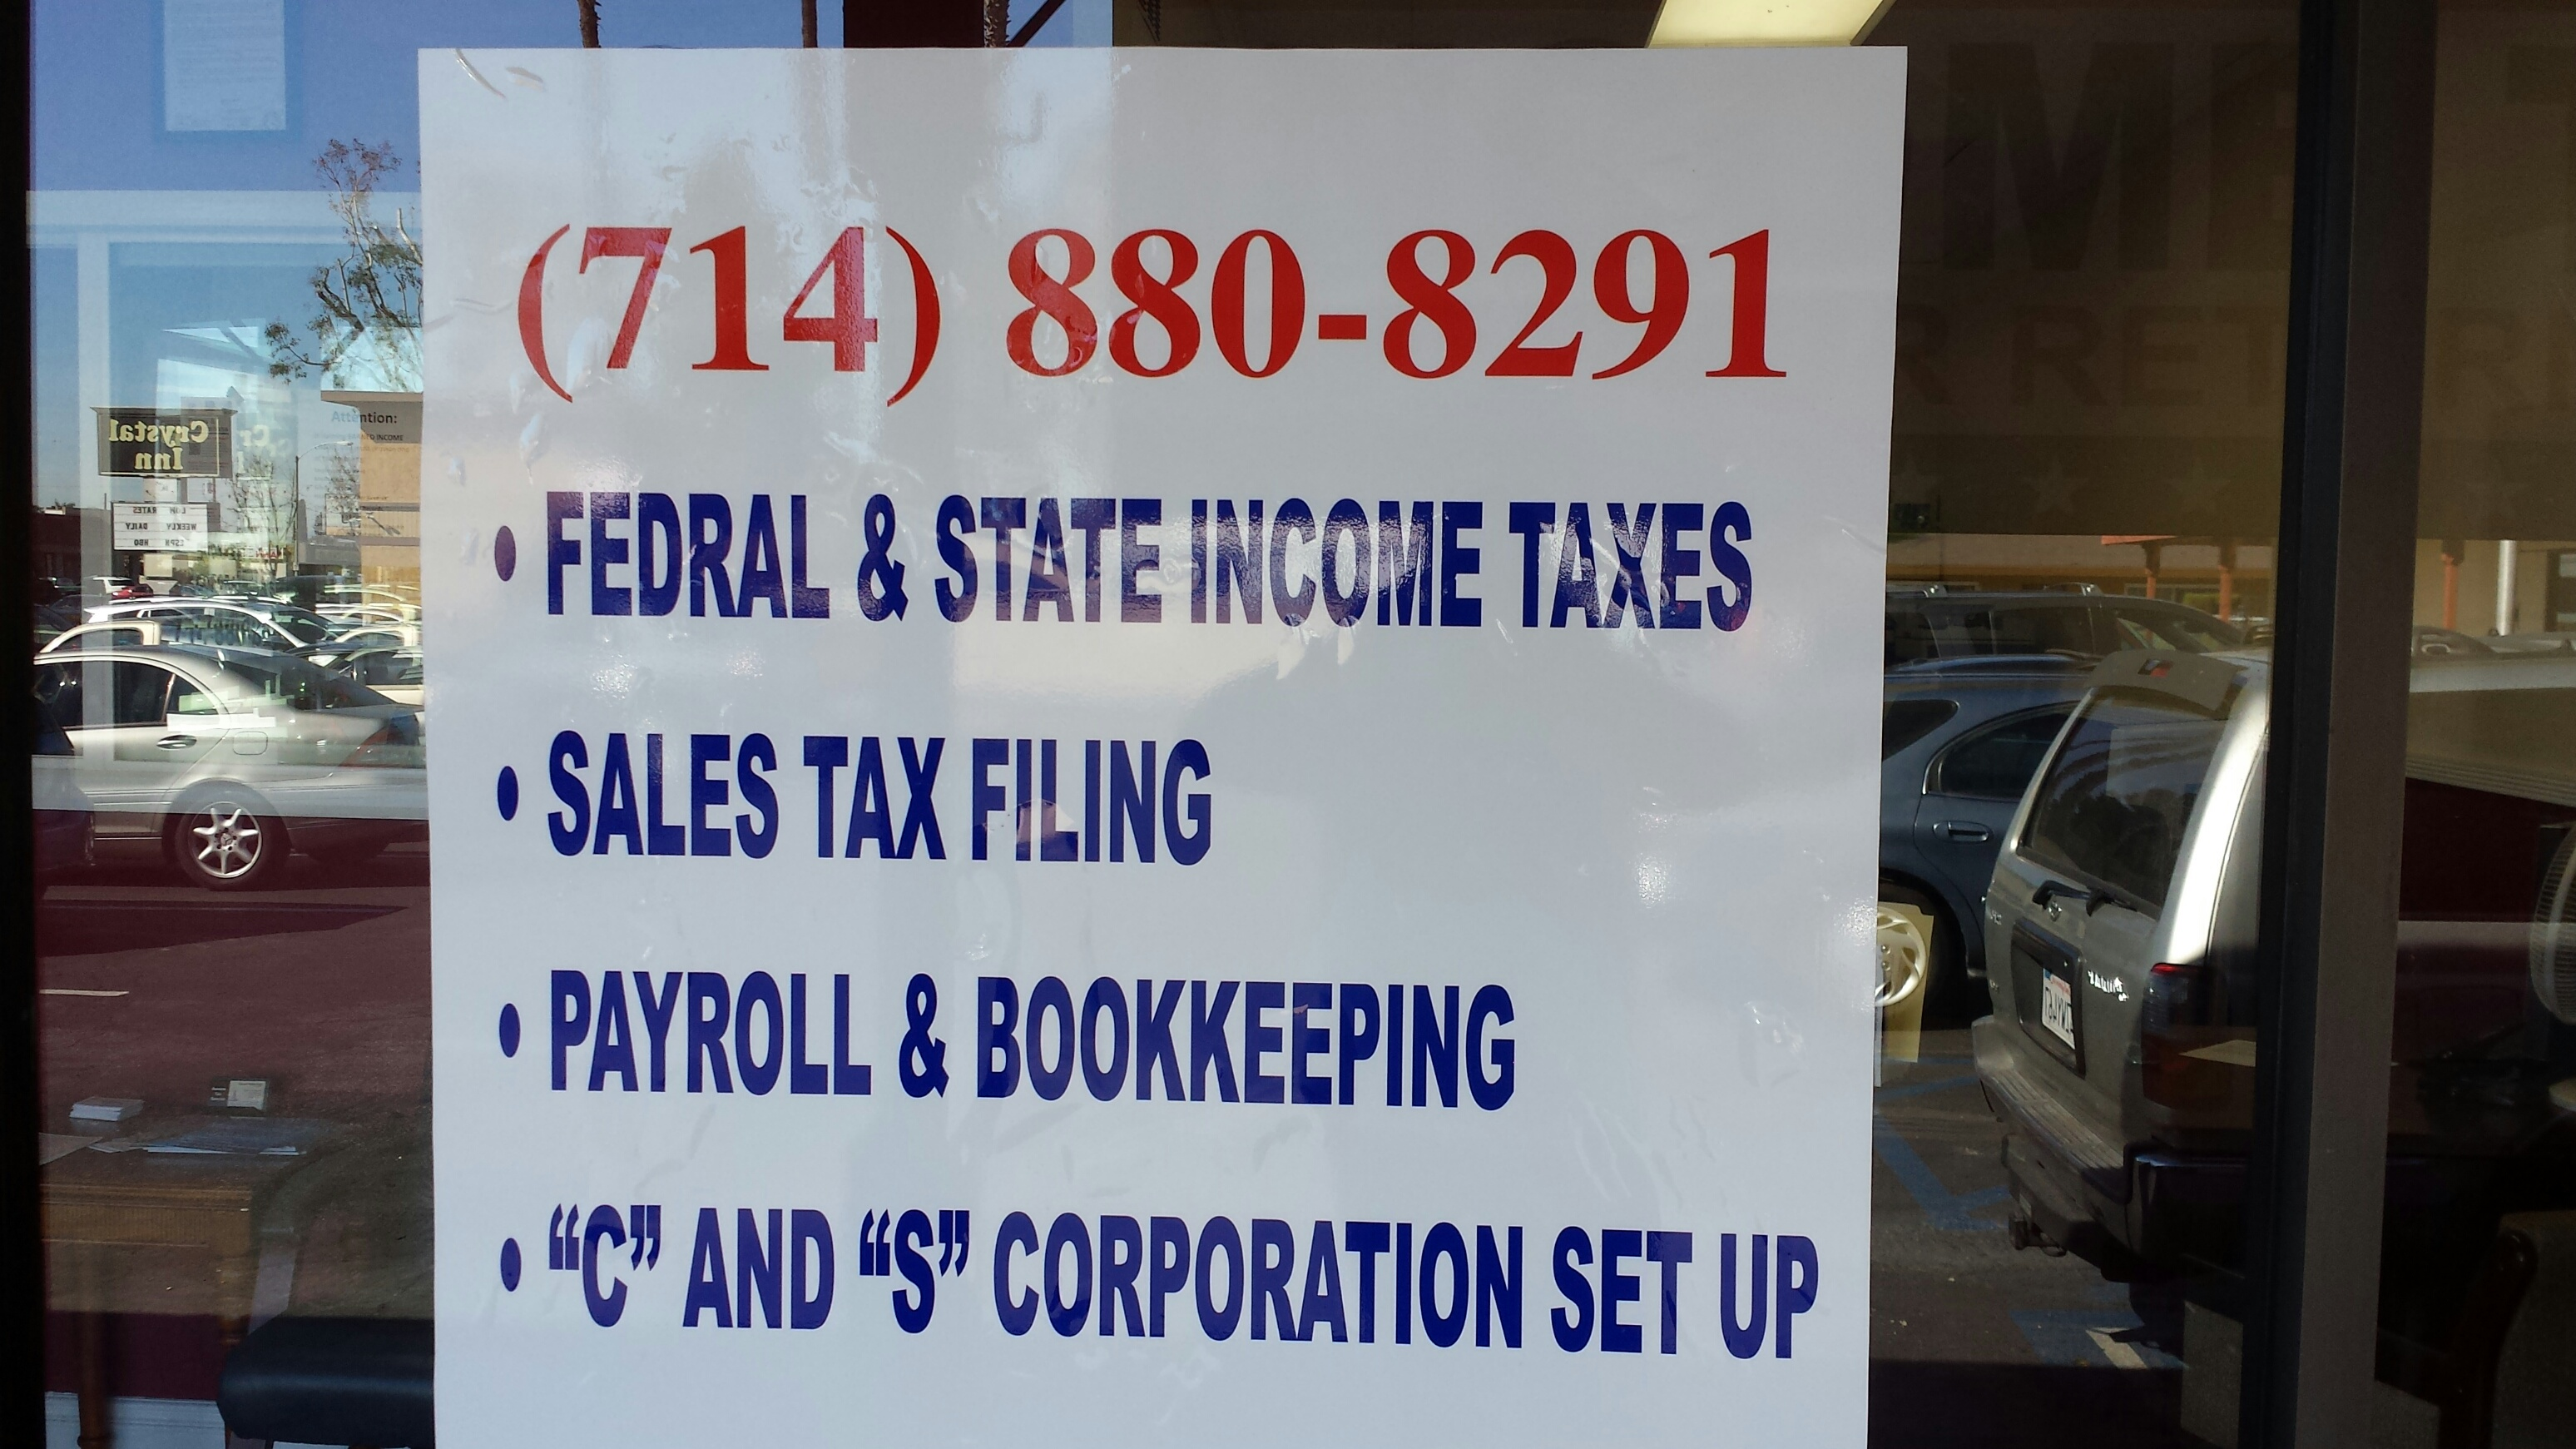 Anaheim Tax Services - ad image